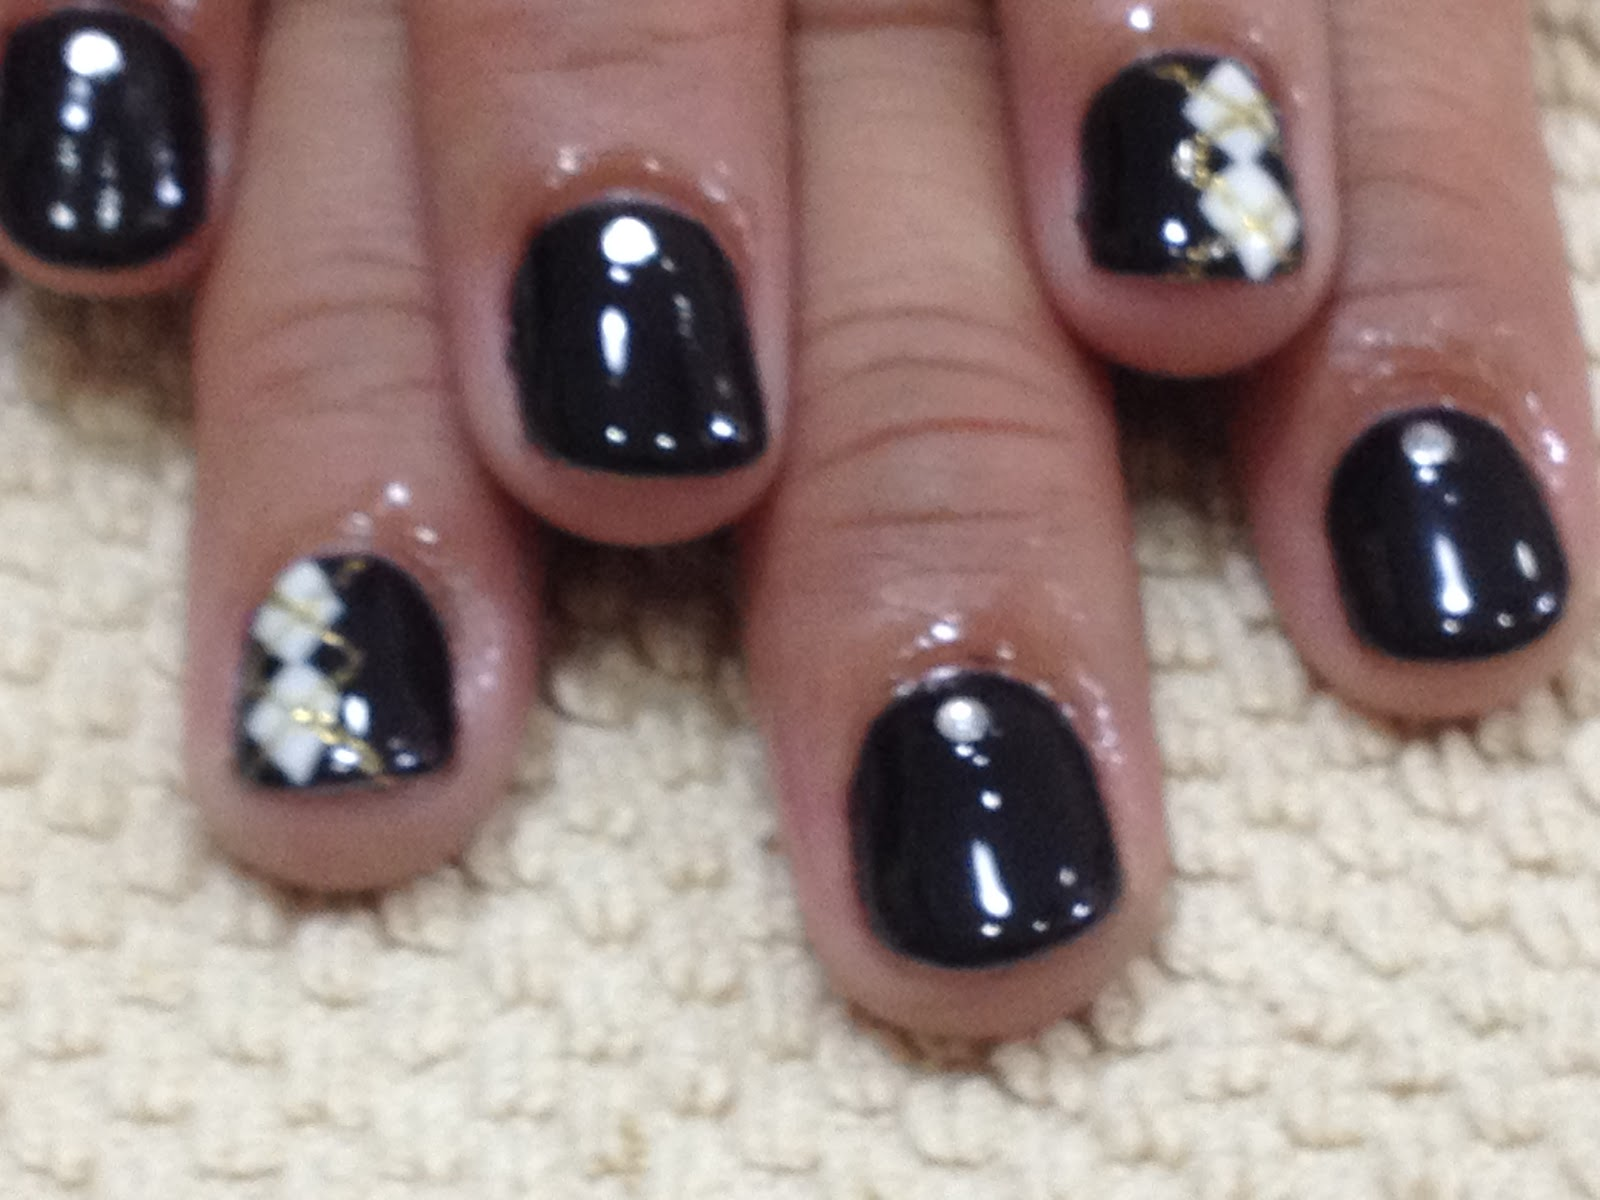 All About Nail Art: August 2012